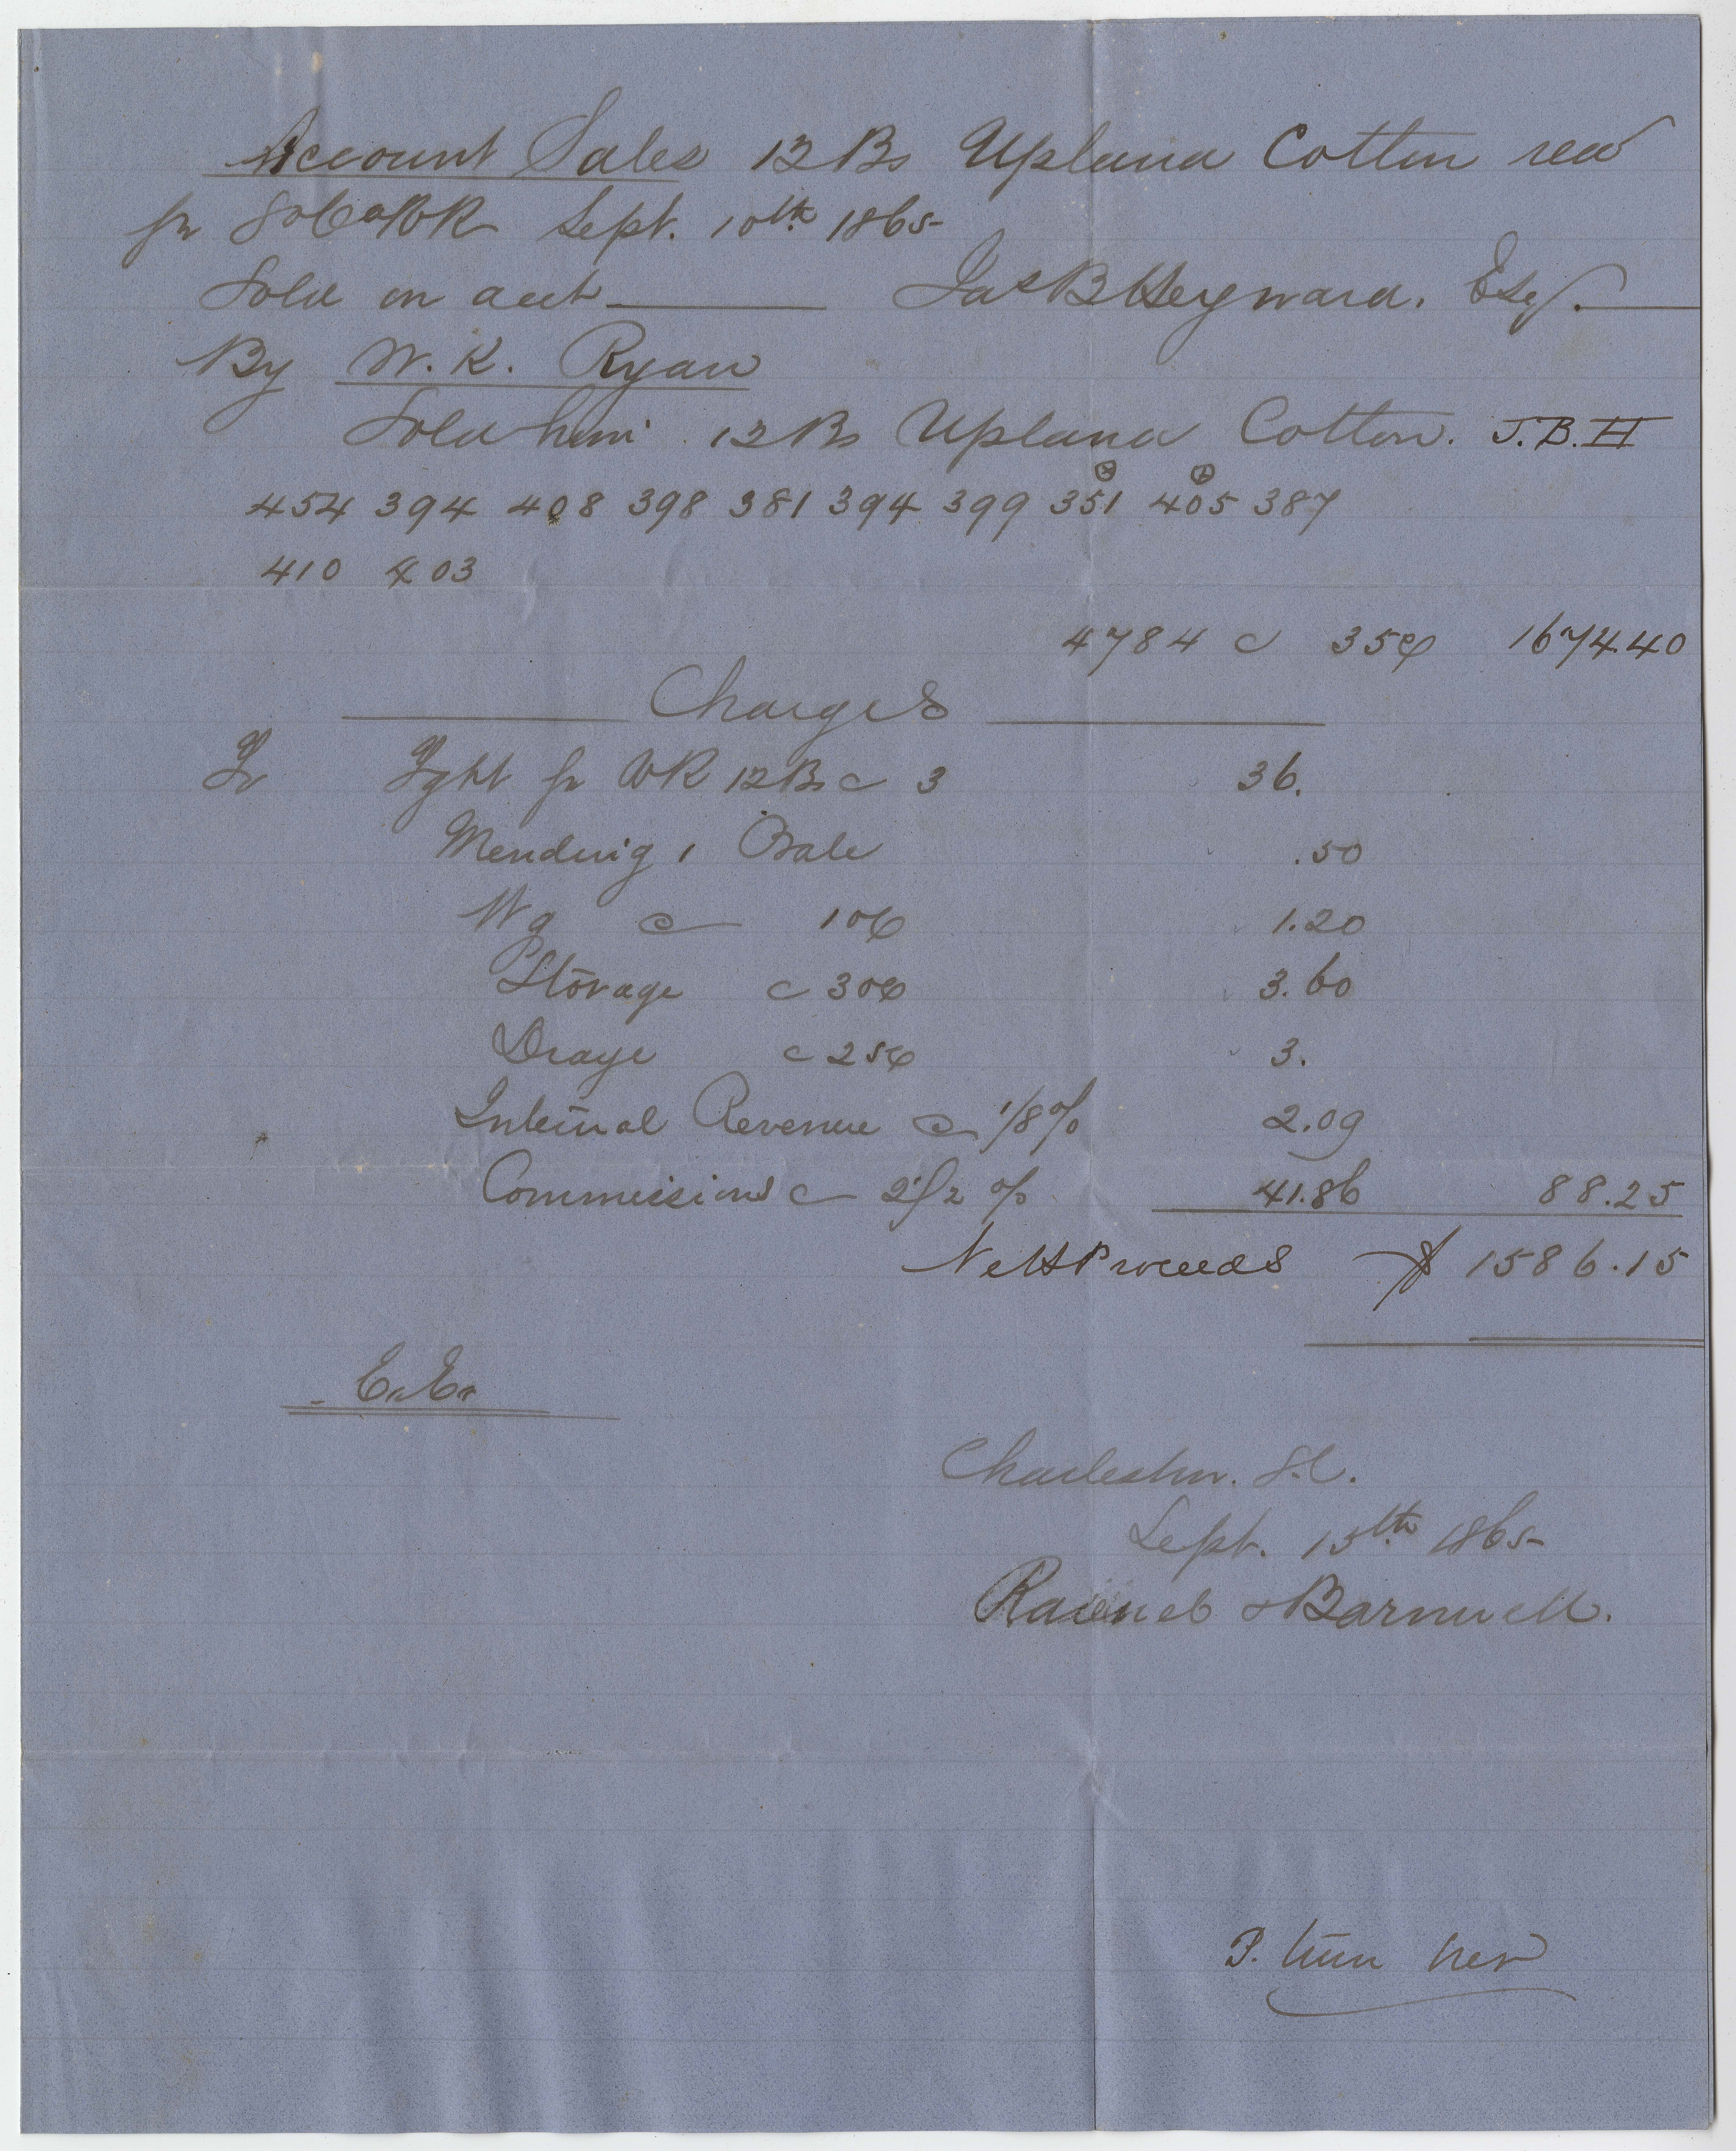 255. Receipt for cotton sold by James B. Heyward -- September 10, 1865